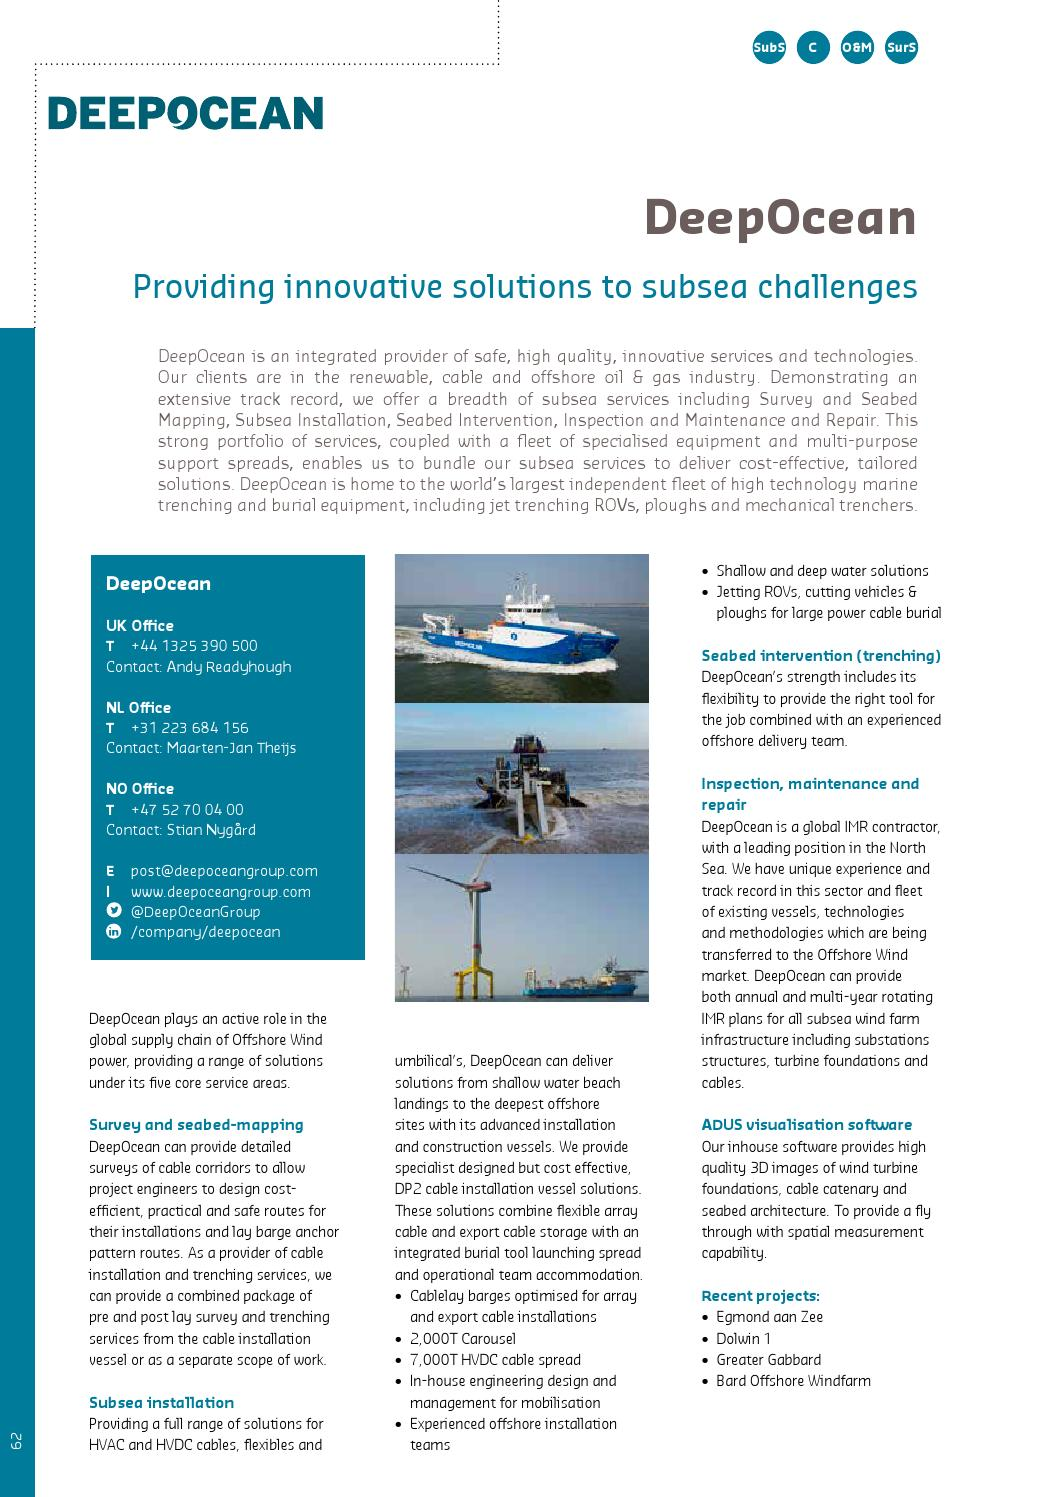 Offshore WIND International Business Guide 2015 by Navingo